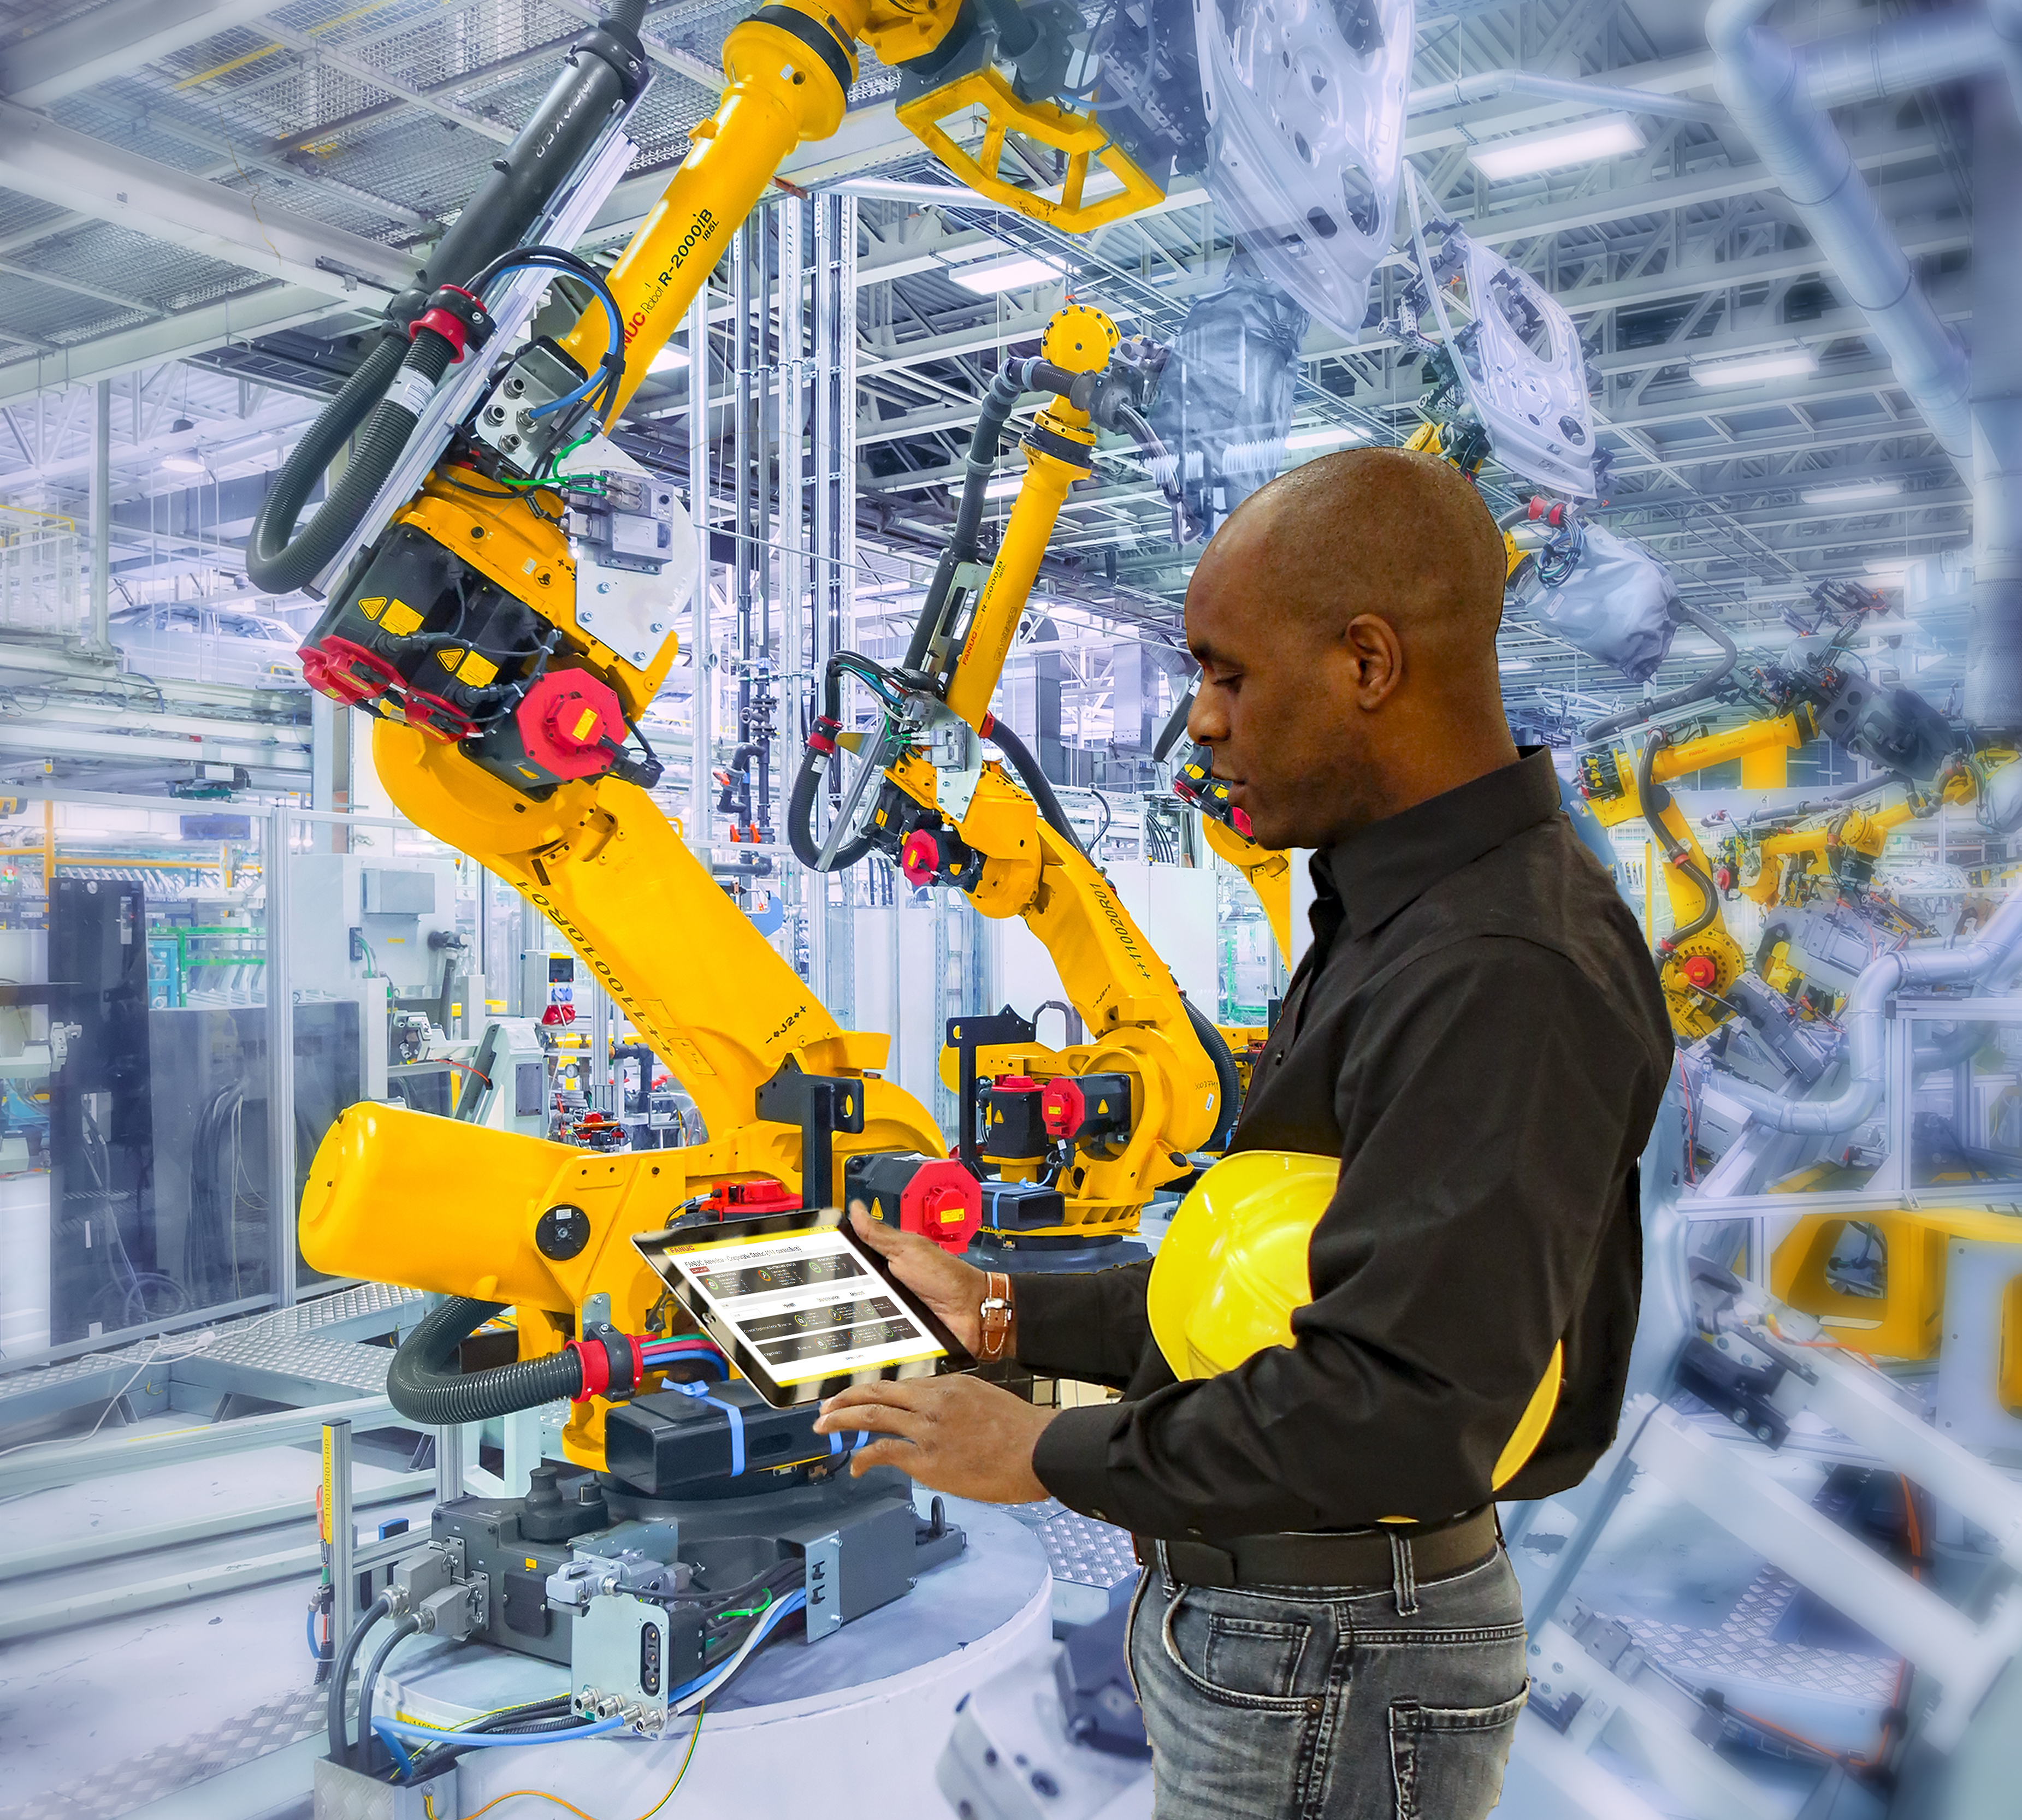 FANUC Demonstrates Smart, Connected IIoT Manufacturing